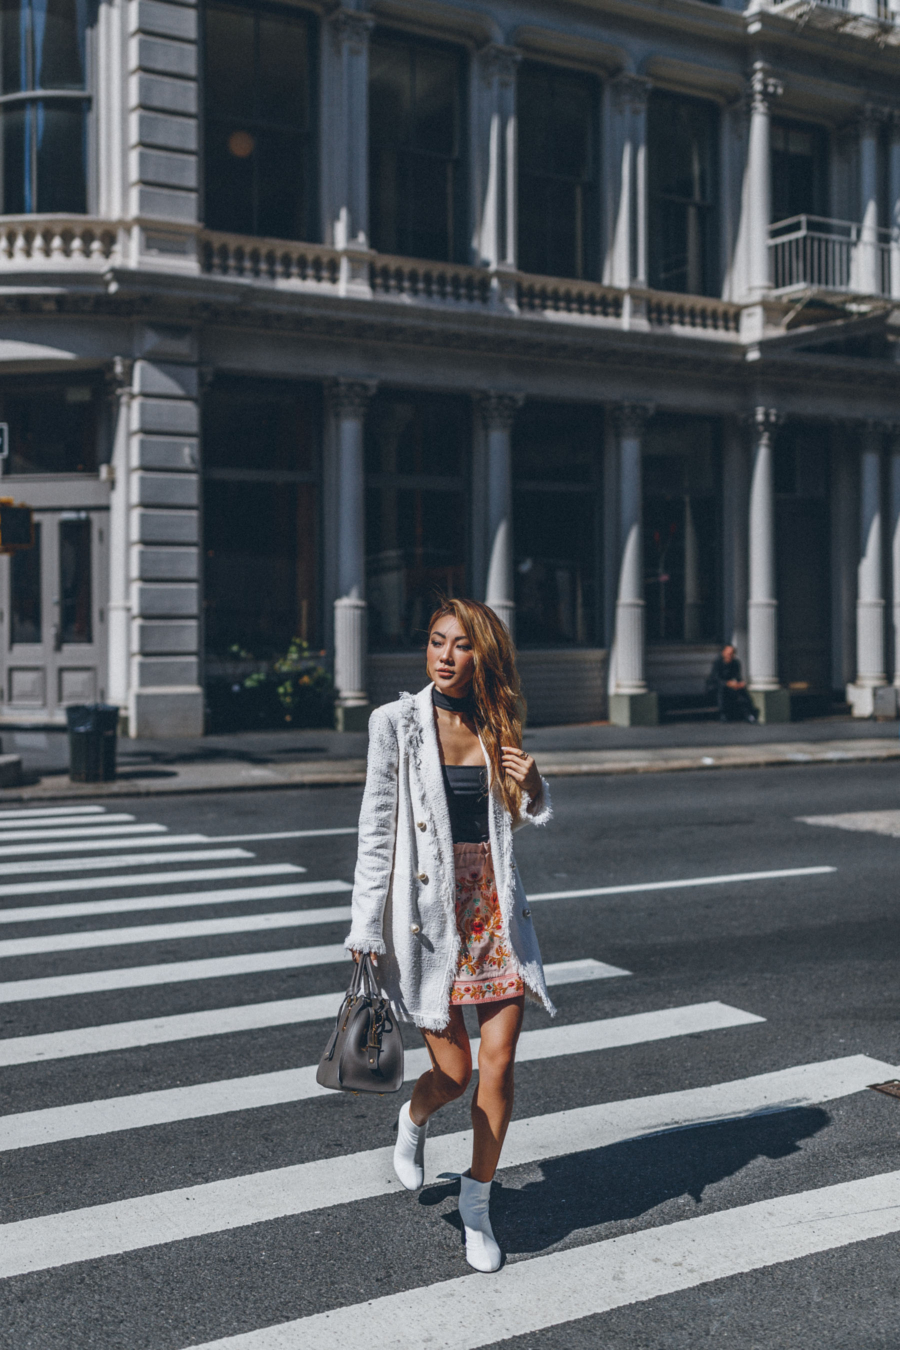 SoHo Streetstyle - Best Places To Take Photos in New York // NotJessFashion.com